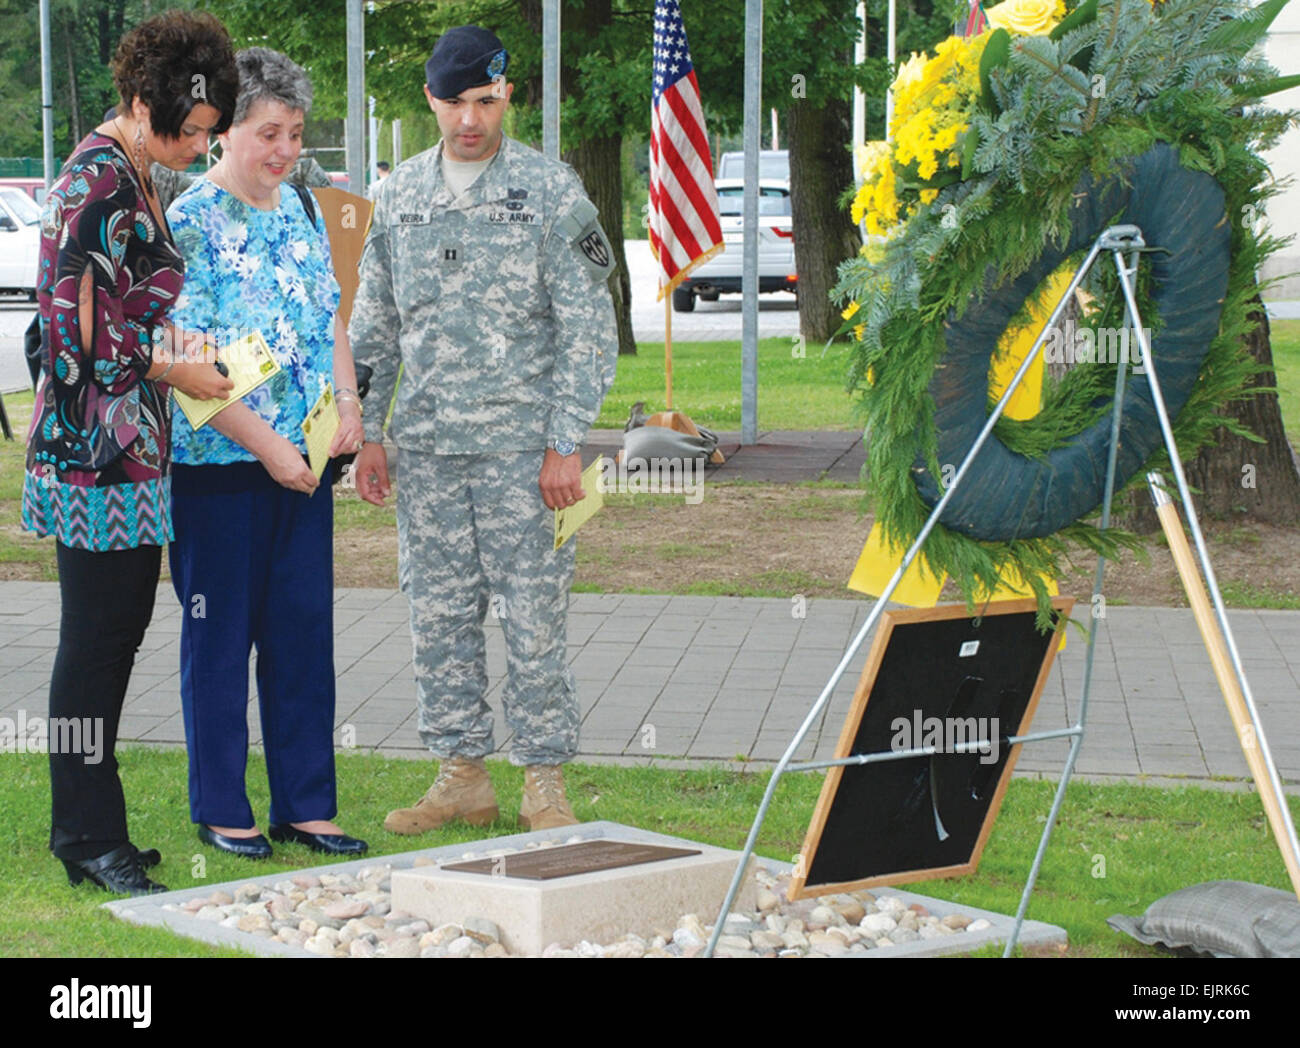 Capt. Renato Vieira, 554th Military Police Company commander, shows Kathy Brelsfoard, left, and Carol Ann Clifton, Stock Photo